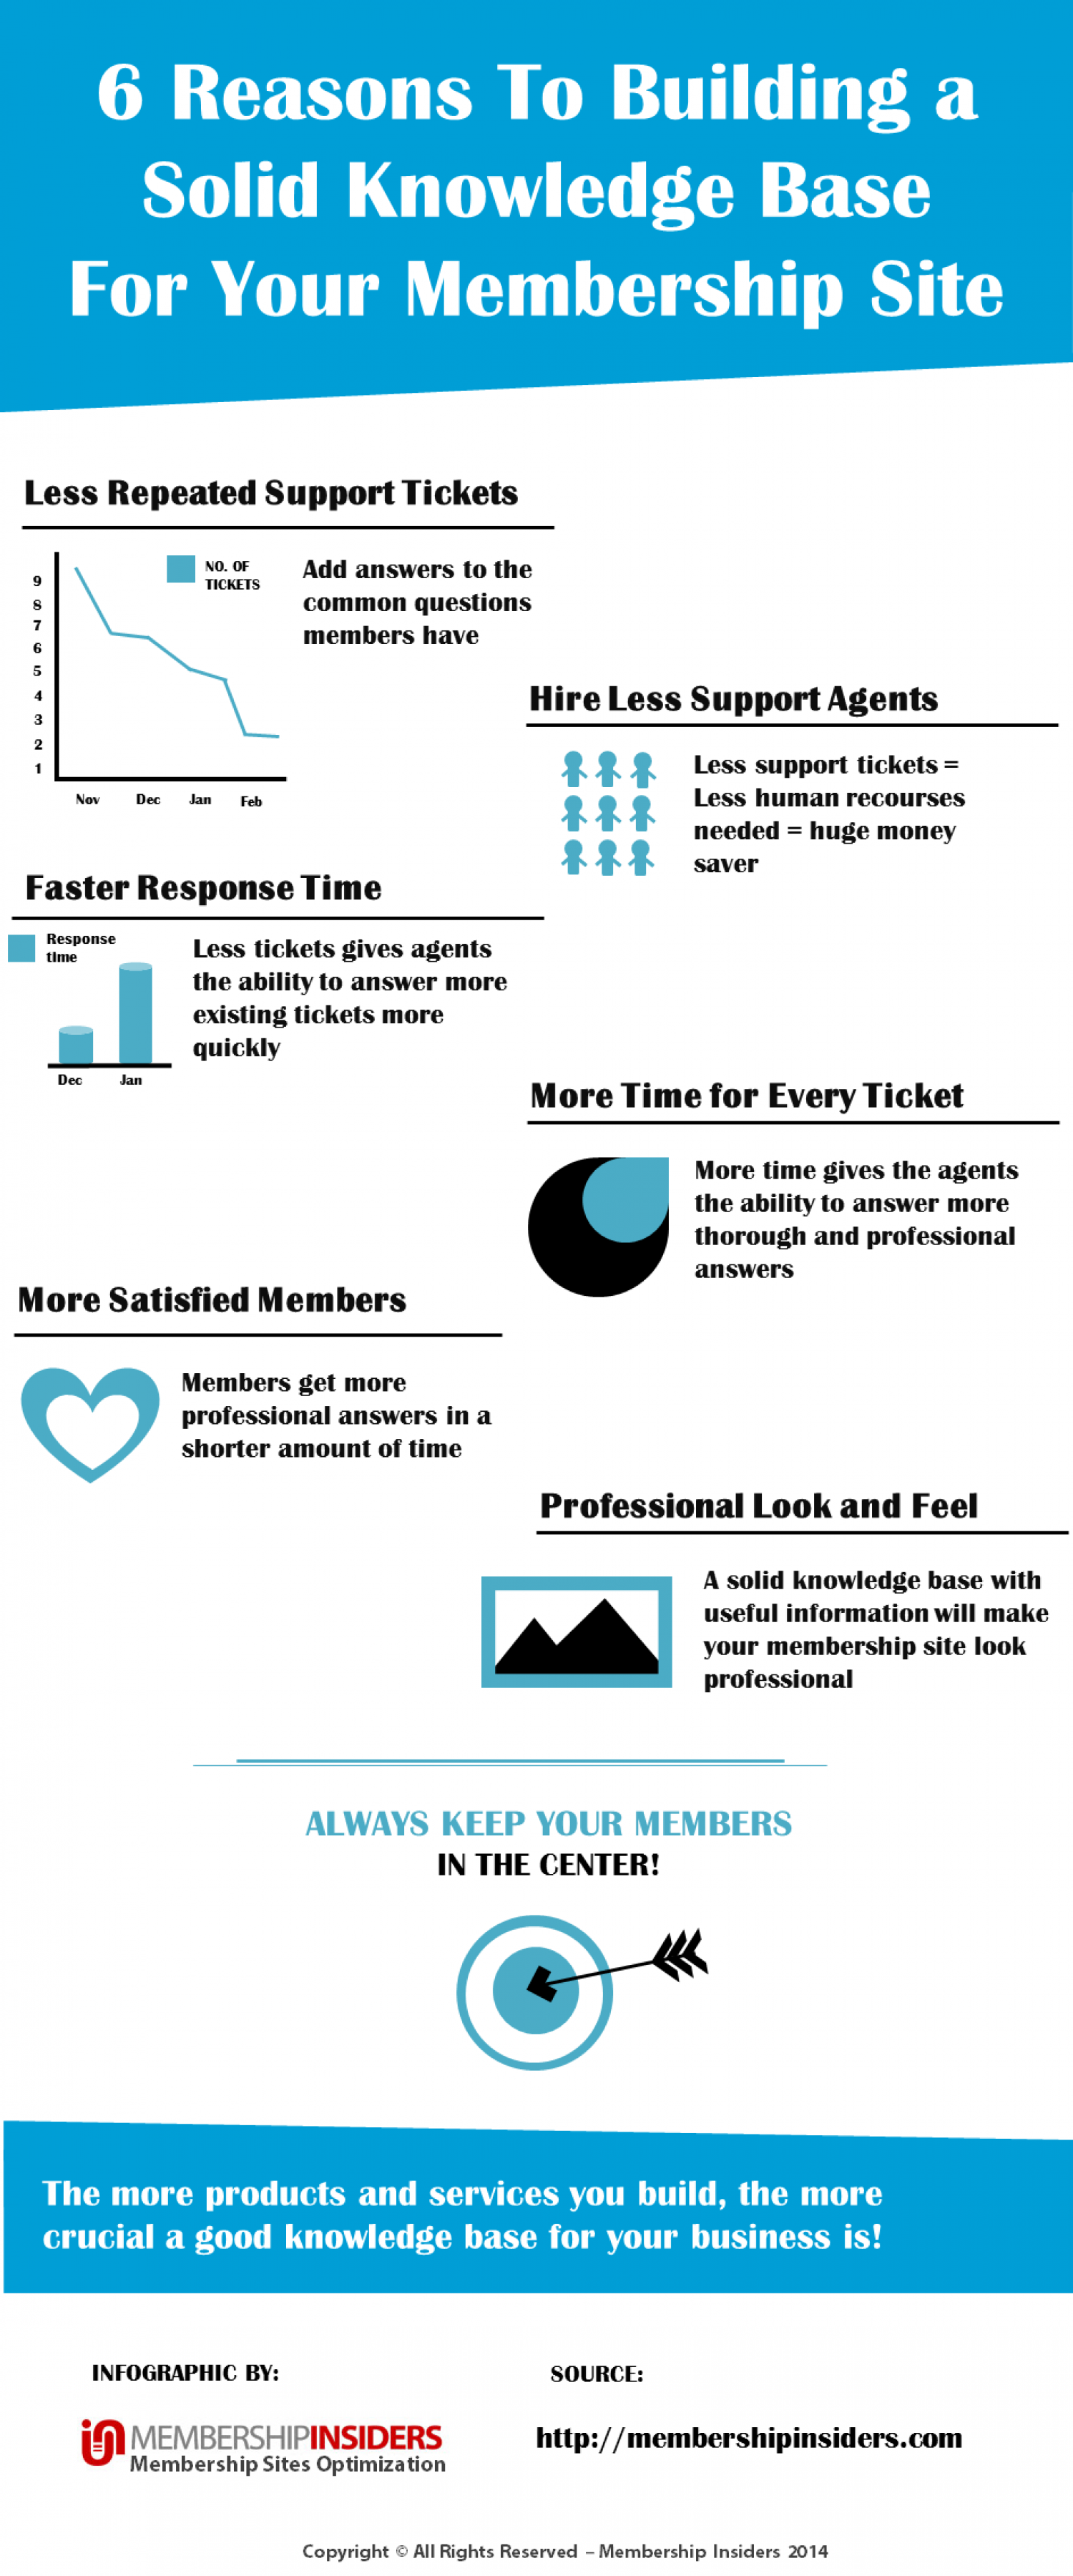 6 Reasons to Building a Solid Knowledge Base for Your Membership Site Infographic